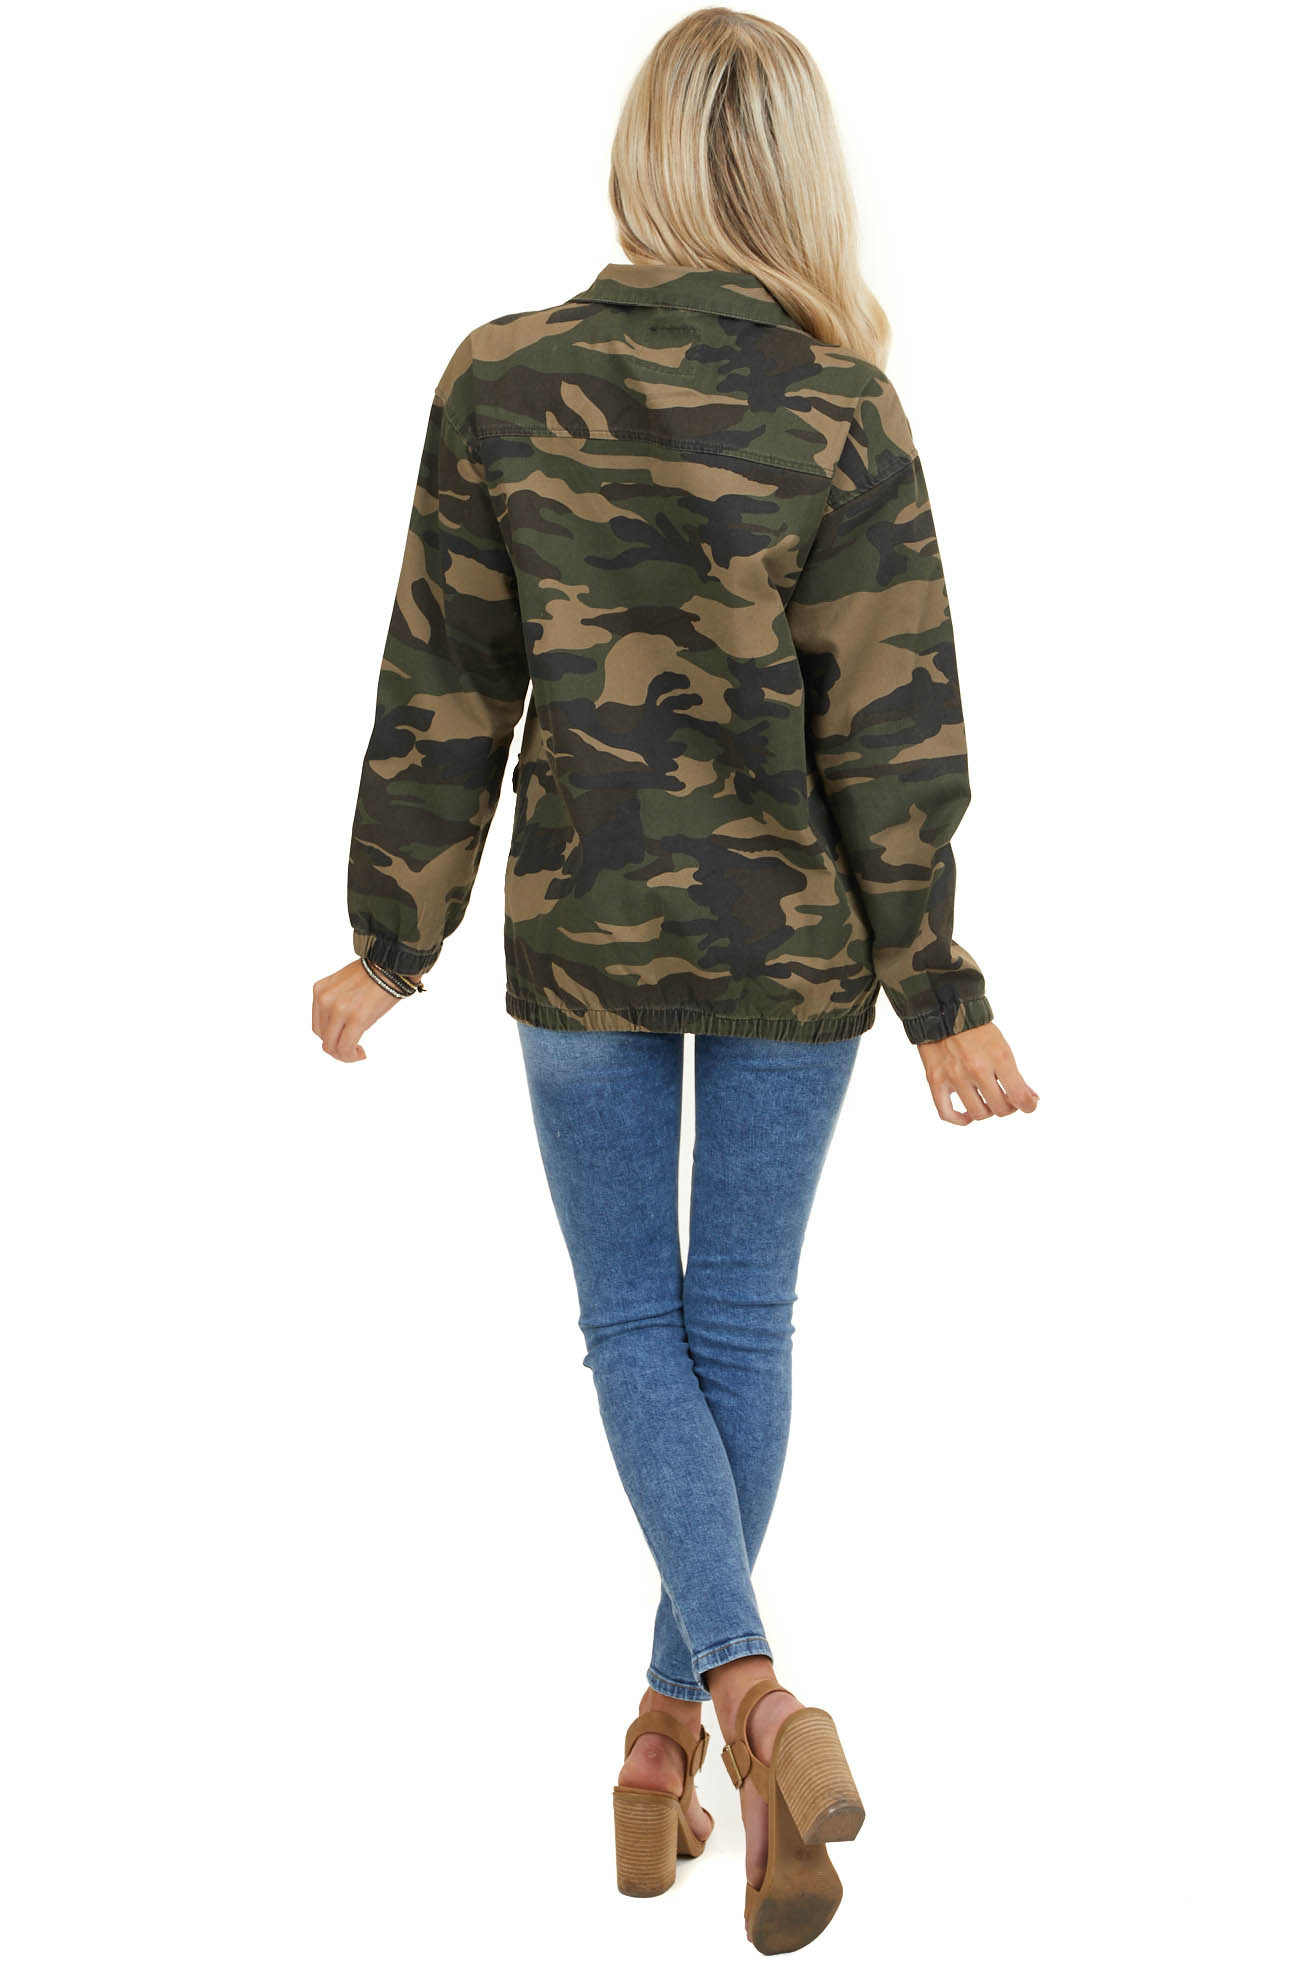 Olive Camo Print Long Sleeve Jacket with Button Details